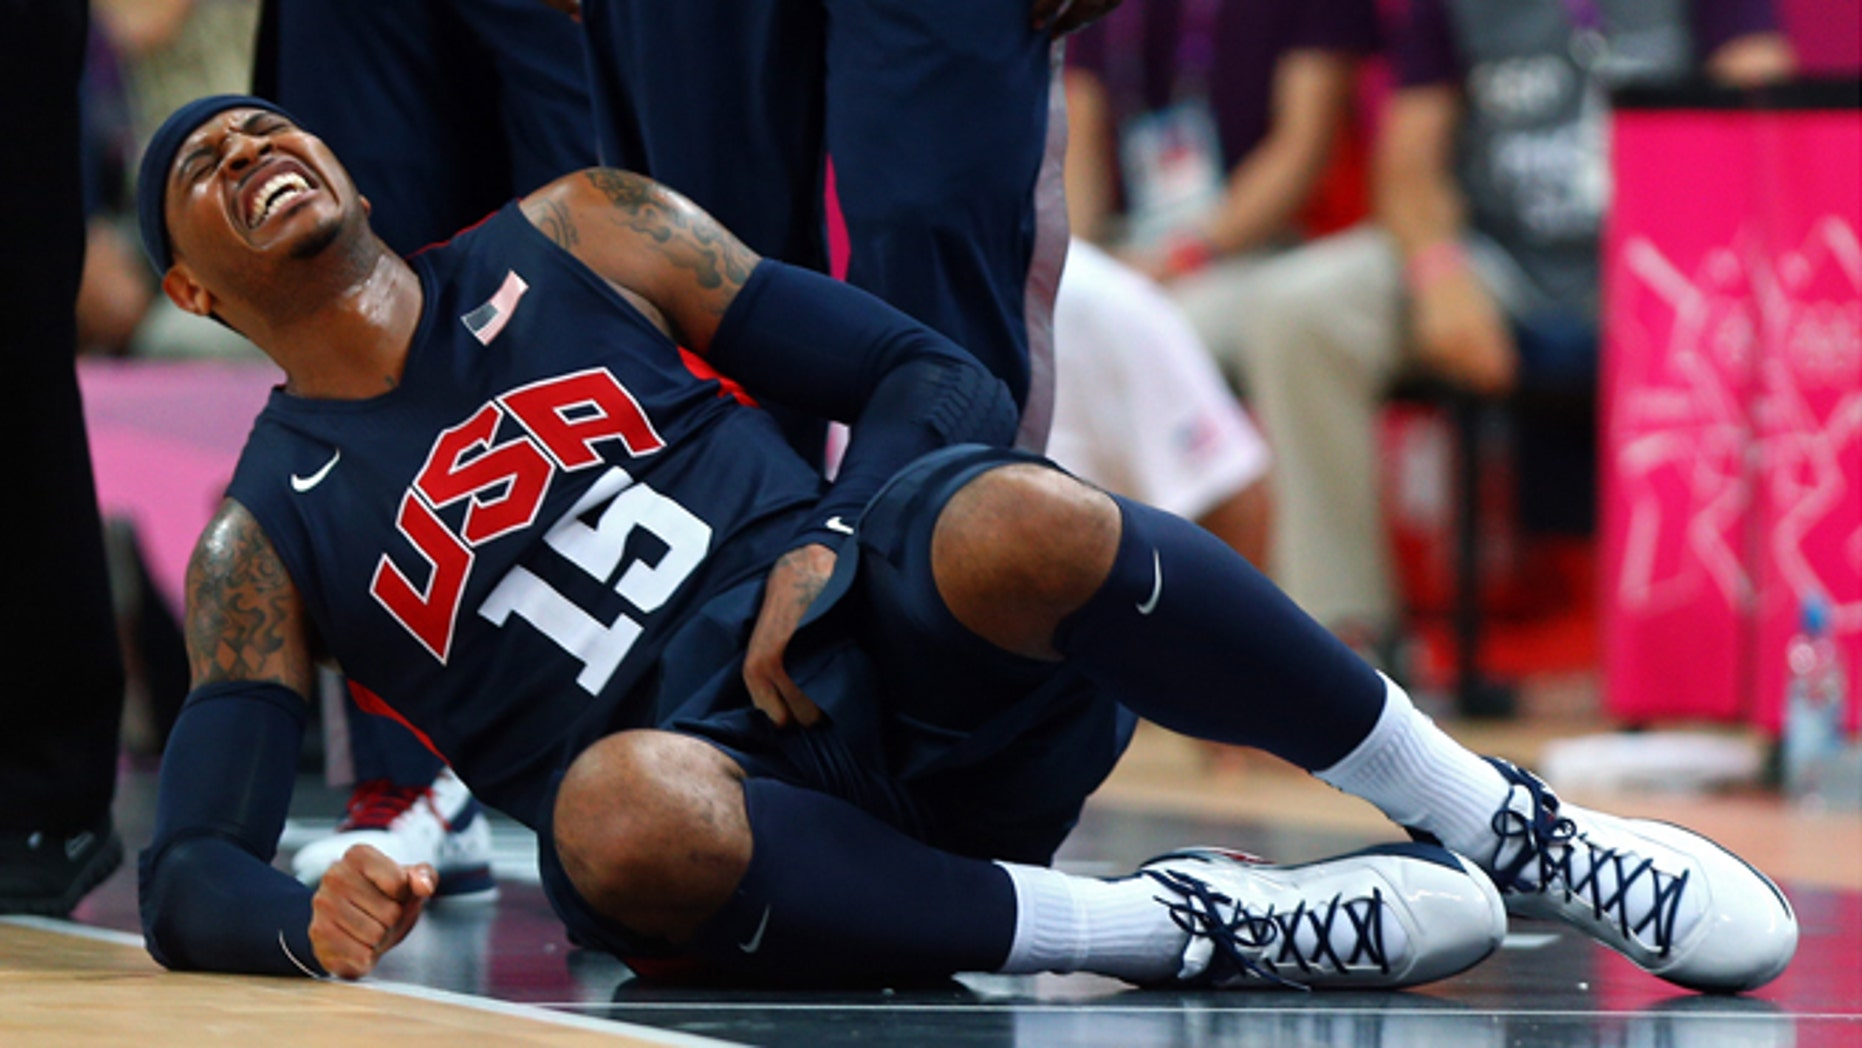 LONDON, ENGLAND - AUGUST 06:  Carmelo Anthony #15 of United States reacts after getting fouled against Argentina during the Men's Basketball Preliminary Round match on Day 10 of the London 2012 Olympic Games at the Basketball Arena on August 6, 2012  in London, England.  (Photo by Paul Gilham/Getty Images)